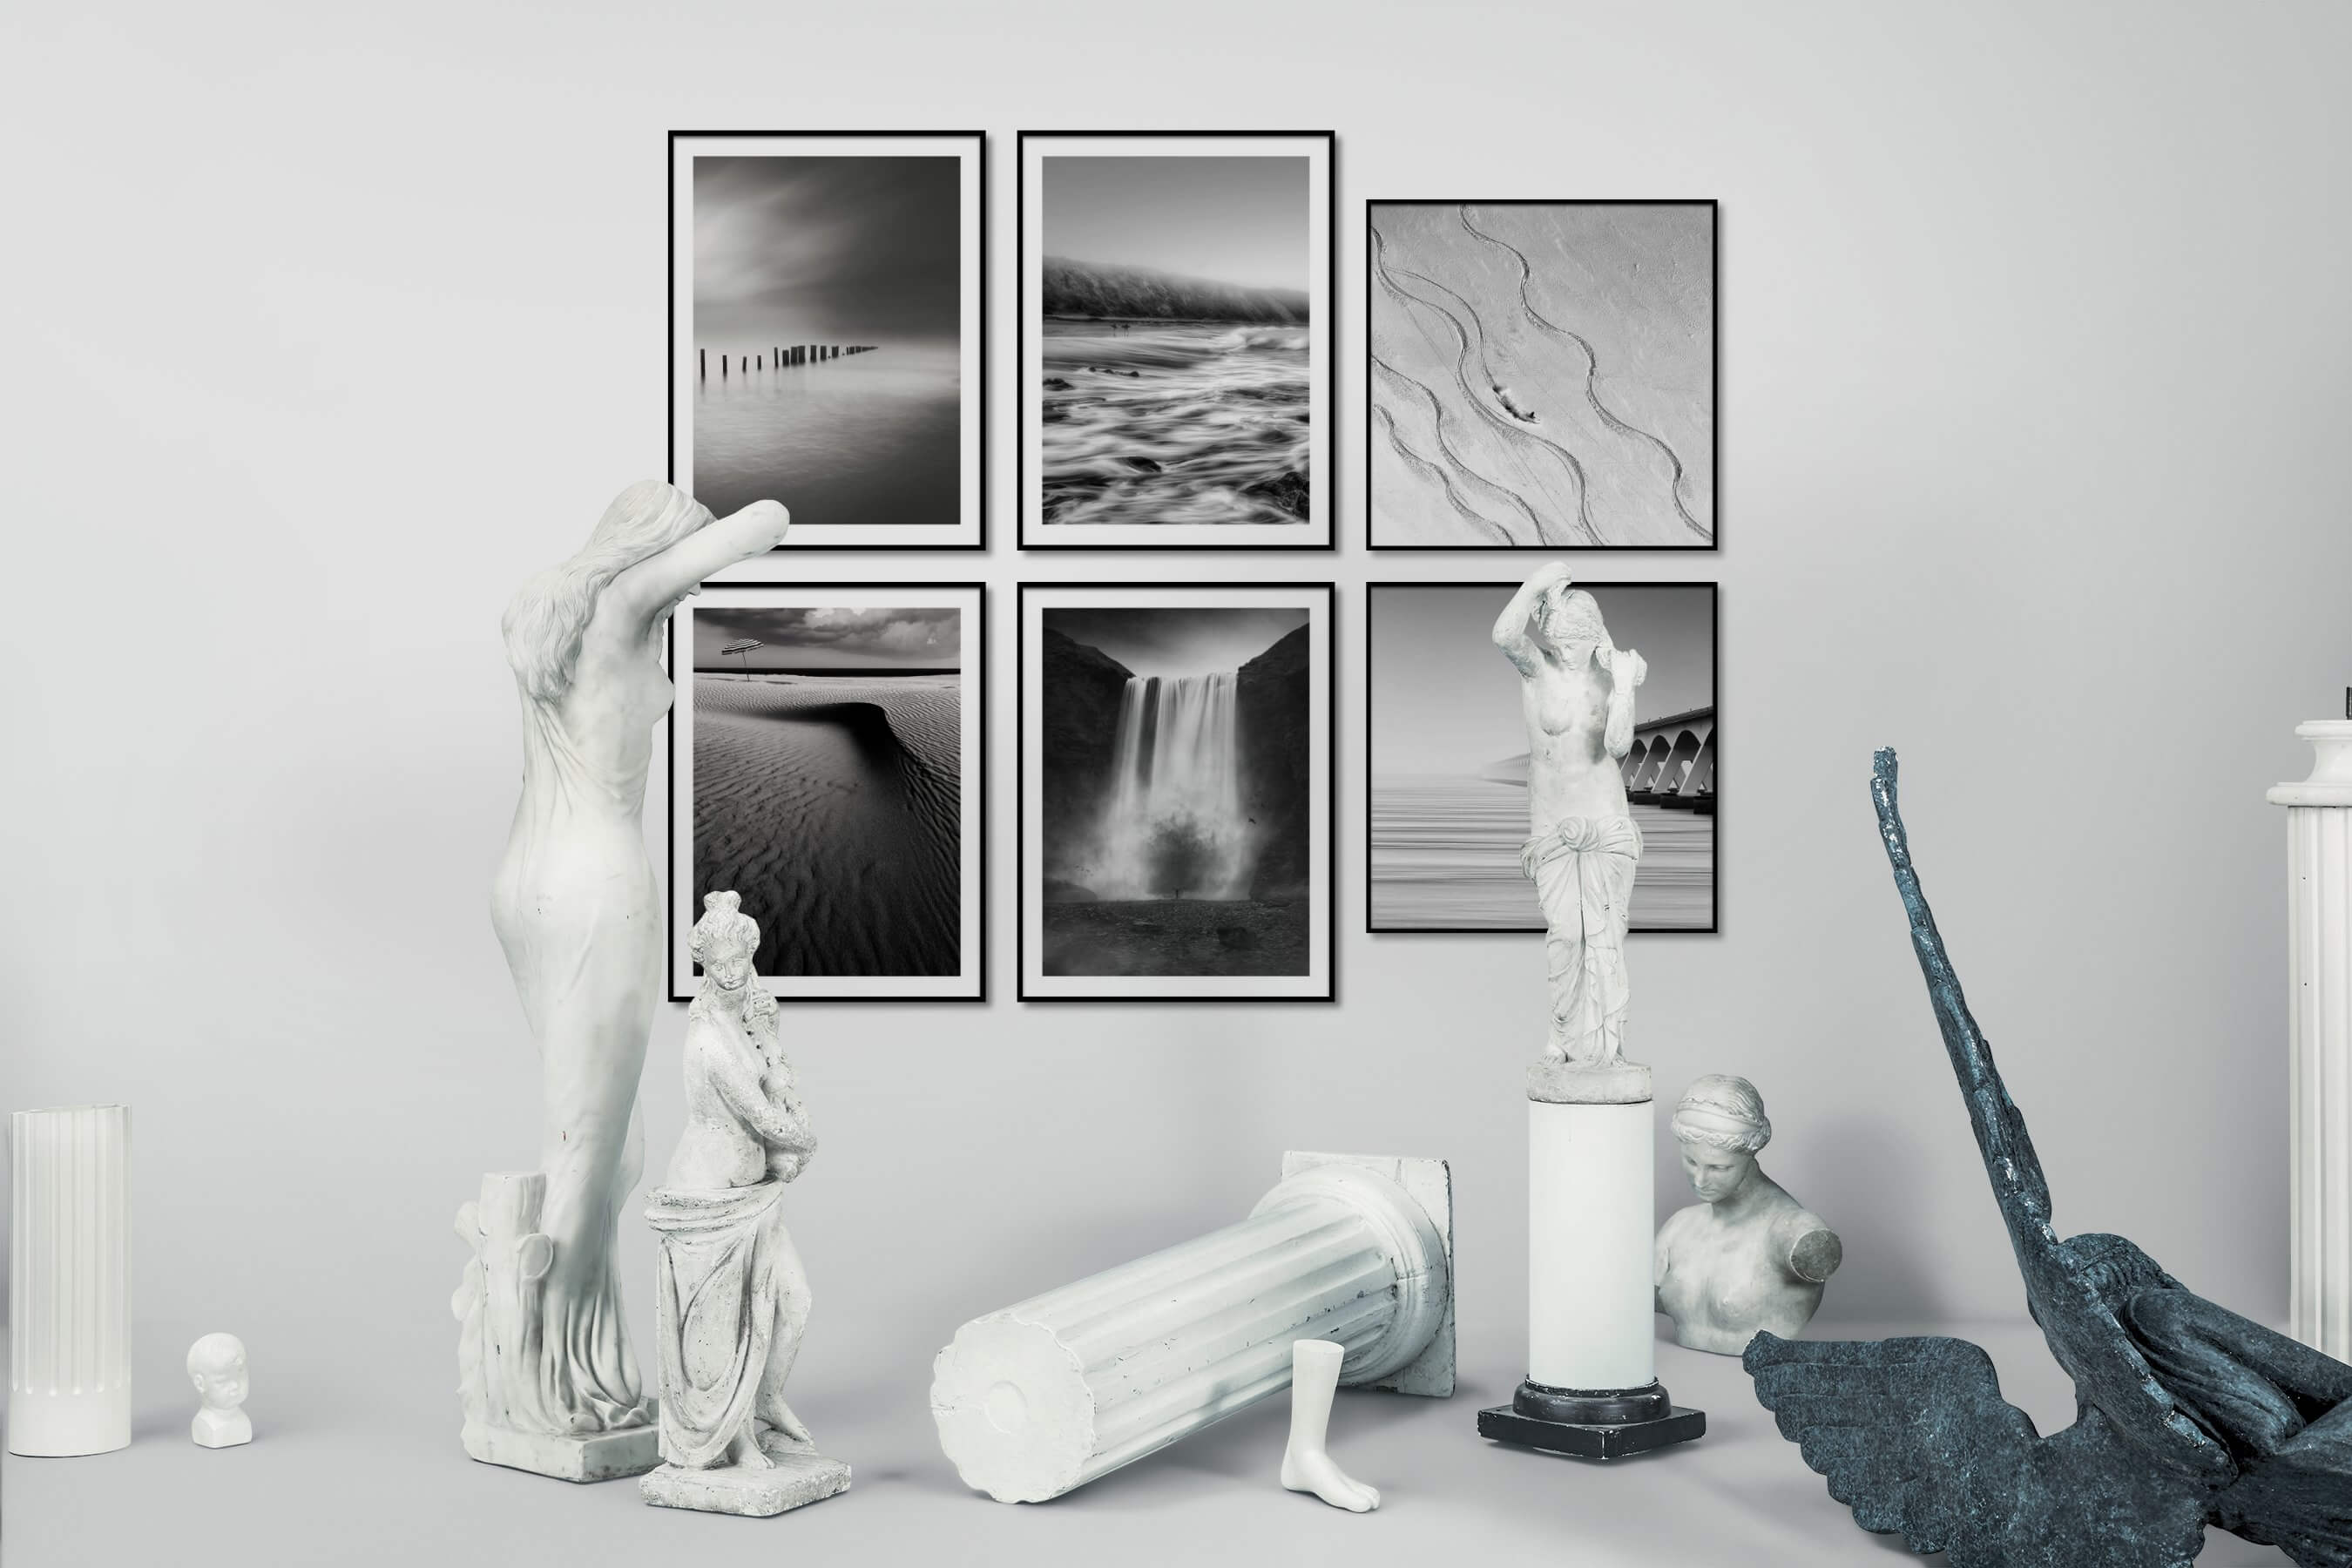 Gallery wall idea with six framed pictures arranged on a wall depicting Black & White, Beach & Water, Mindfulness, For the Minimalist, and Nature